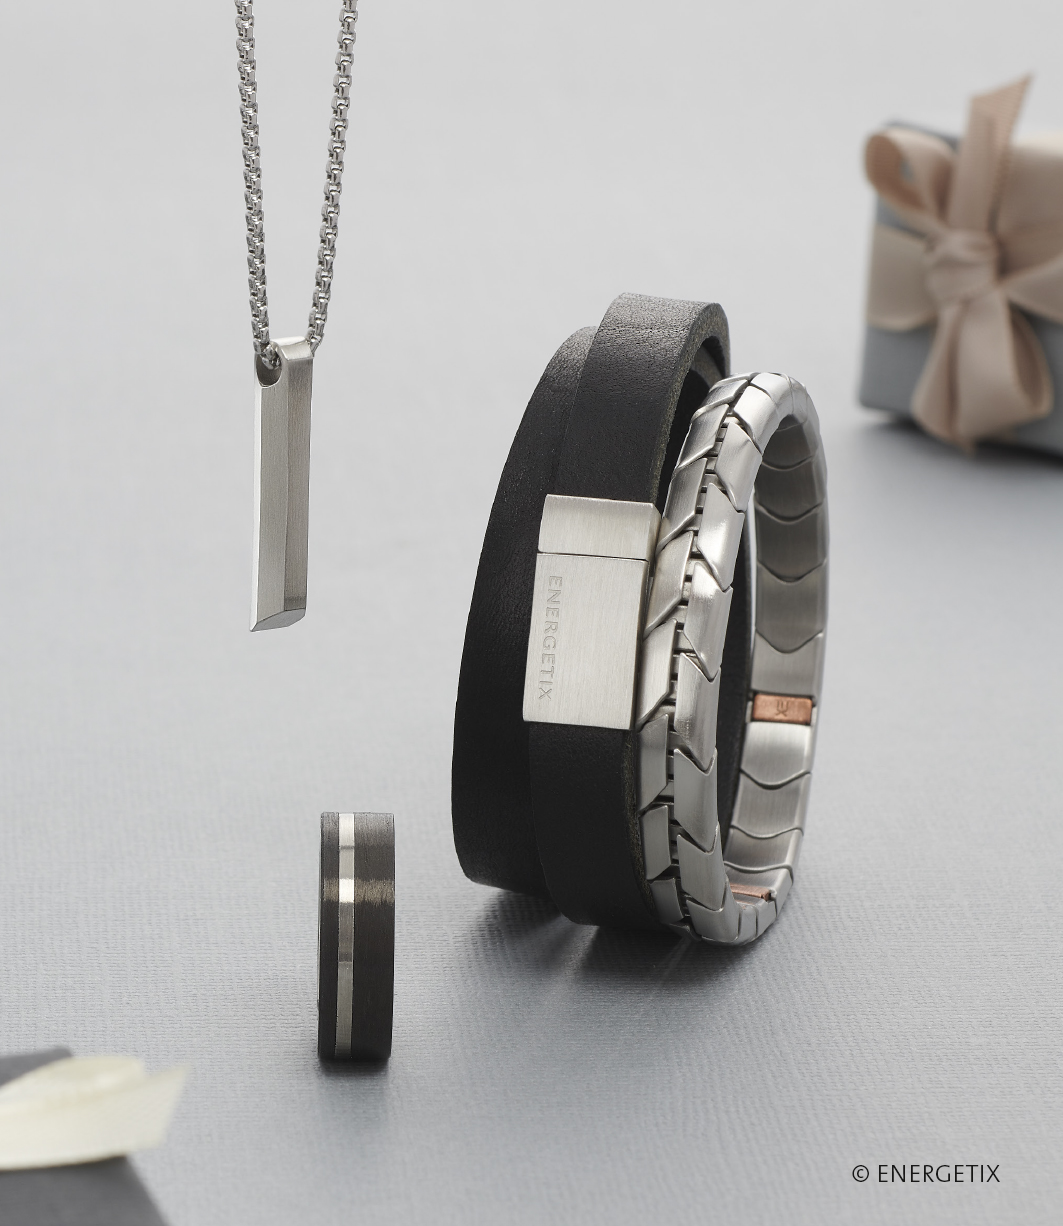 Stainless steel polished pendant hanging from a chain above a steel mens rings with carbon black finish. A double wrap leather magnetic bracelet with steel fastener, next to a stainless steel magnetic flexi bracelet with chevron style design